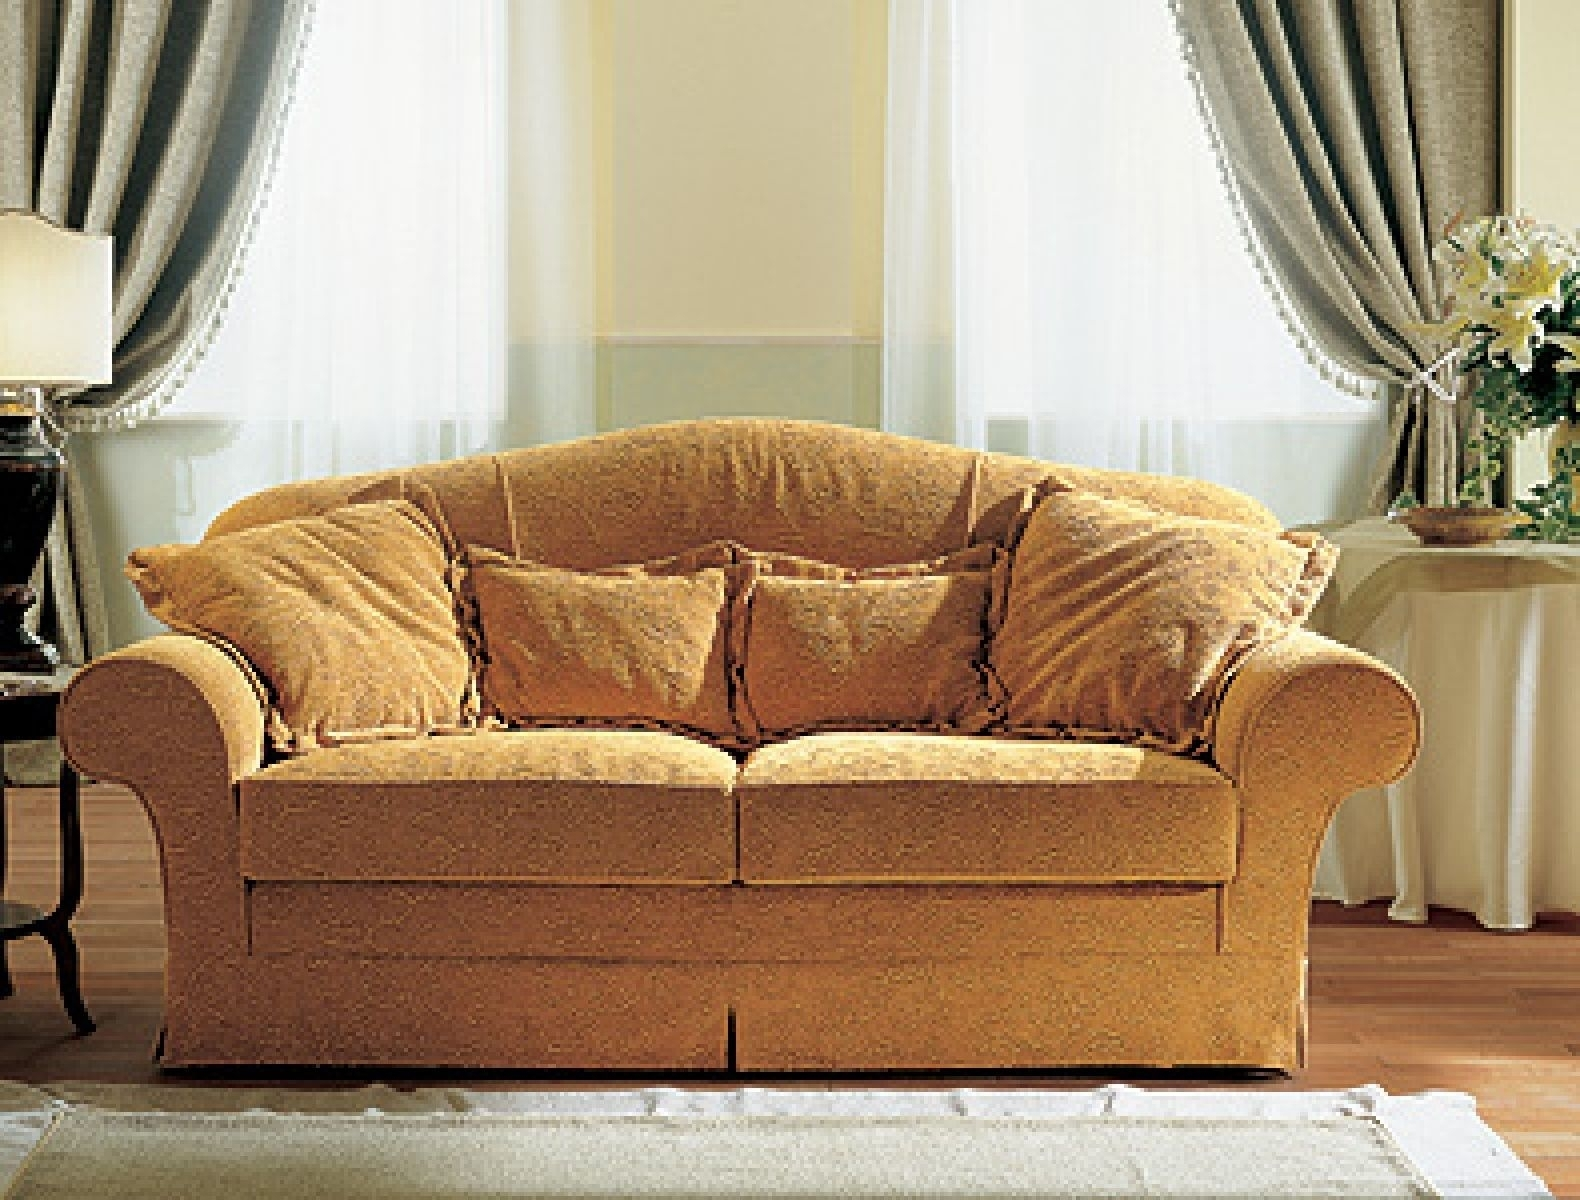 Elegant Traditional Sofas 70 For Your Office Sofa Ideas With Regarding Traditional Sofas (View 5 of 10)